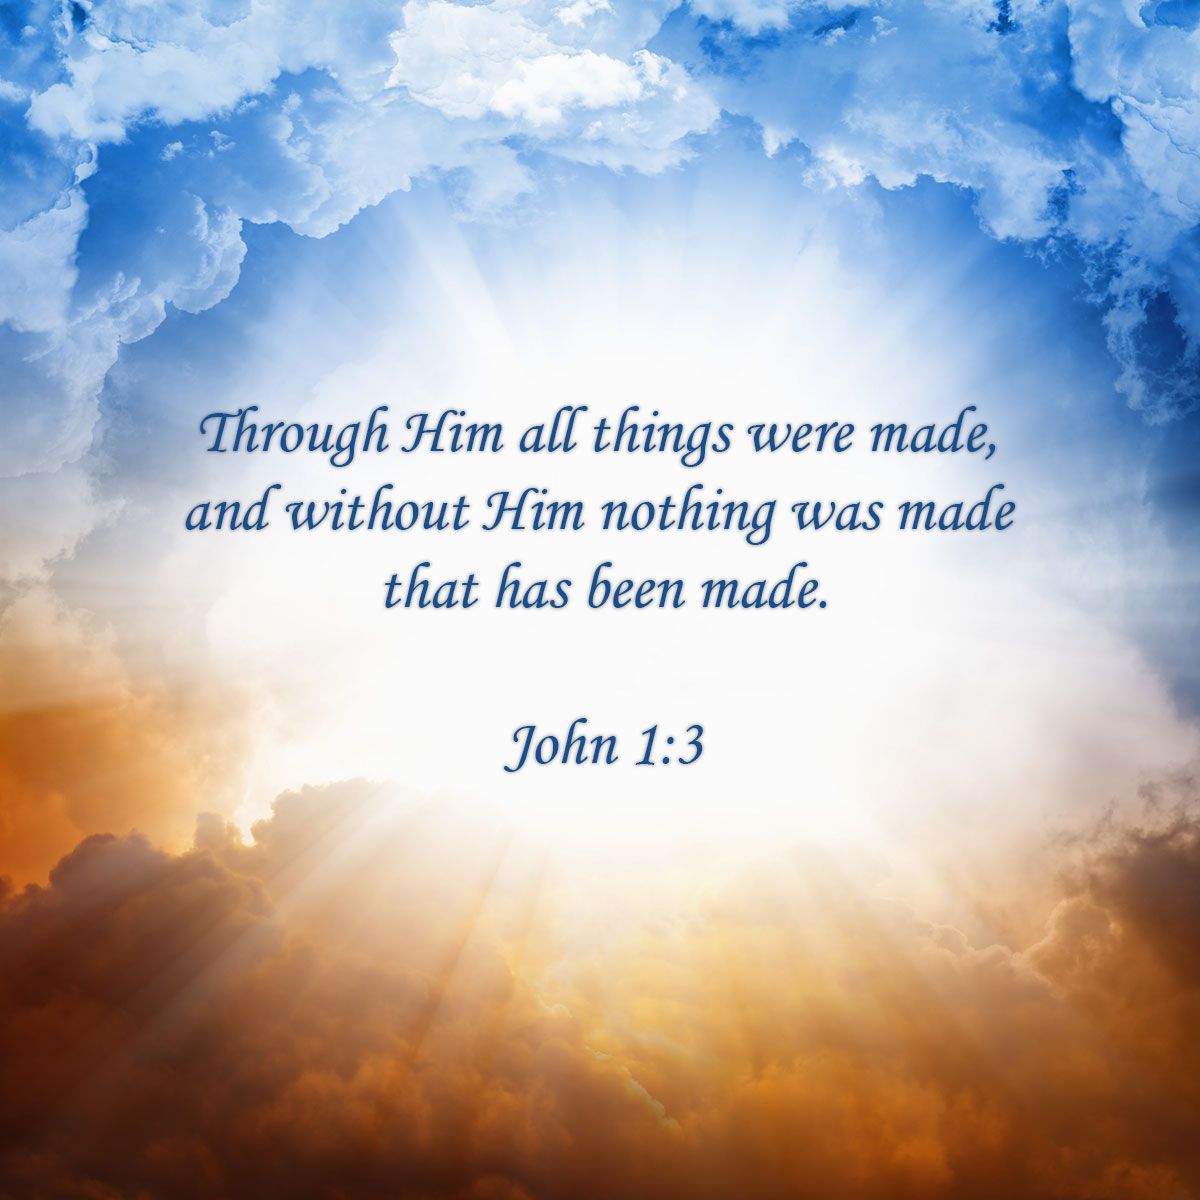 John 1:3 concept art: Through Him all things were made and without Him nothing was made.